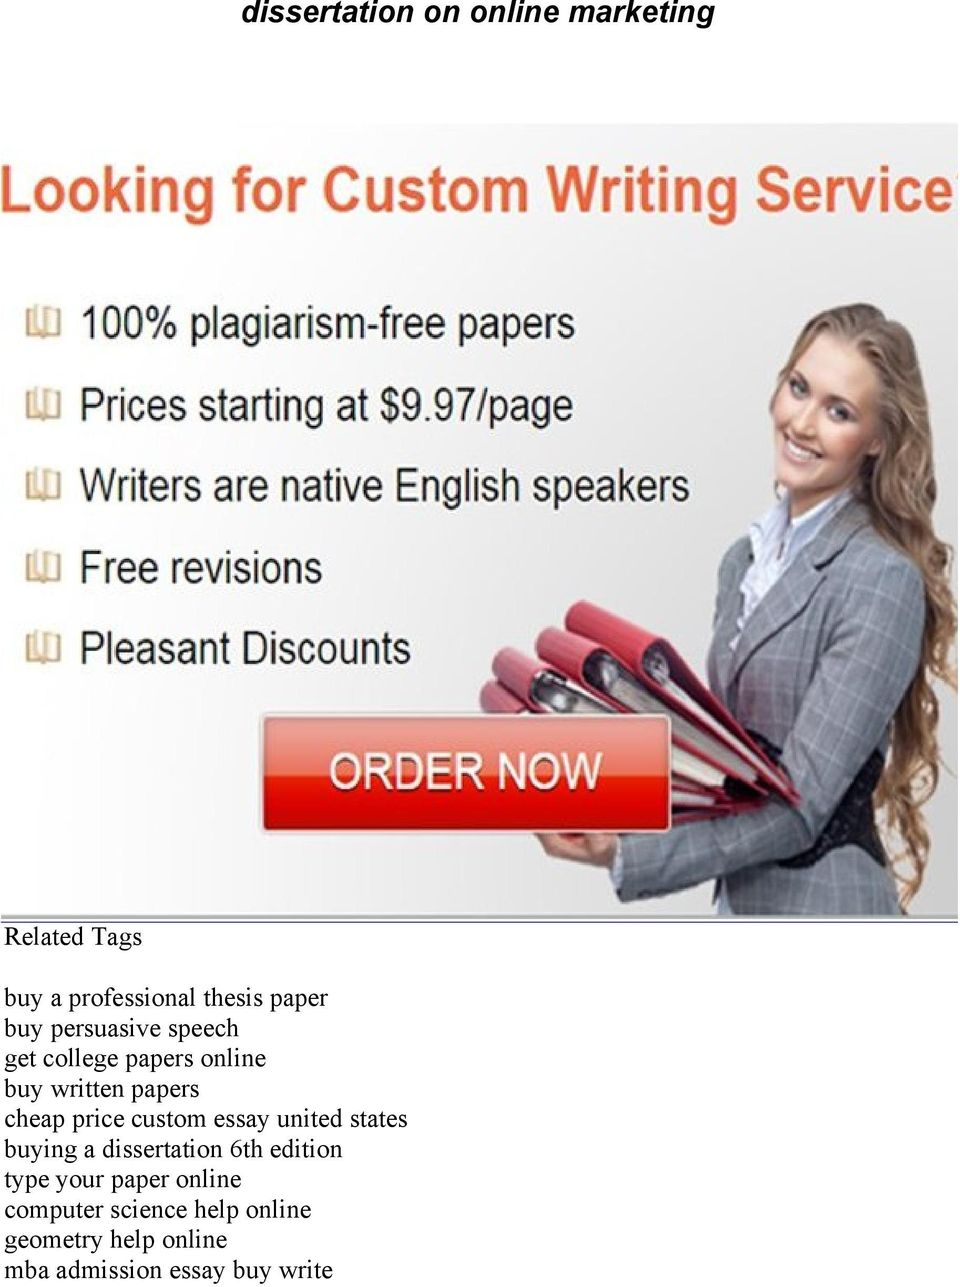 custom essay united states buying a dissertation 6th edition type your paper